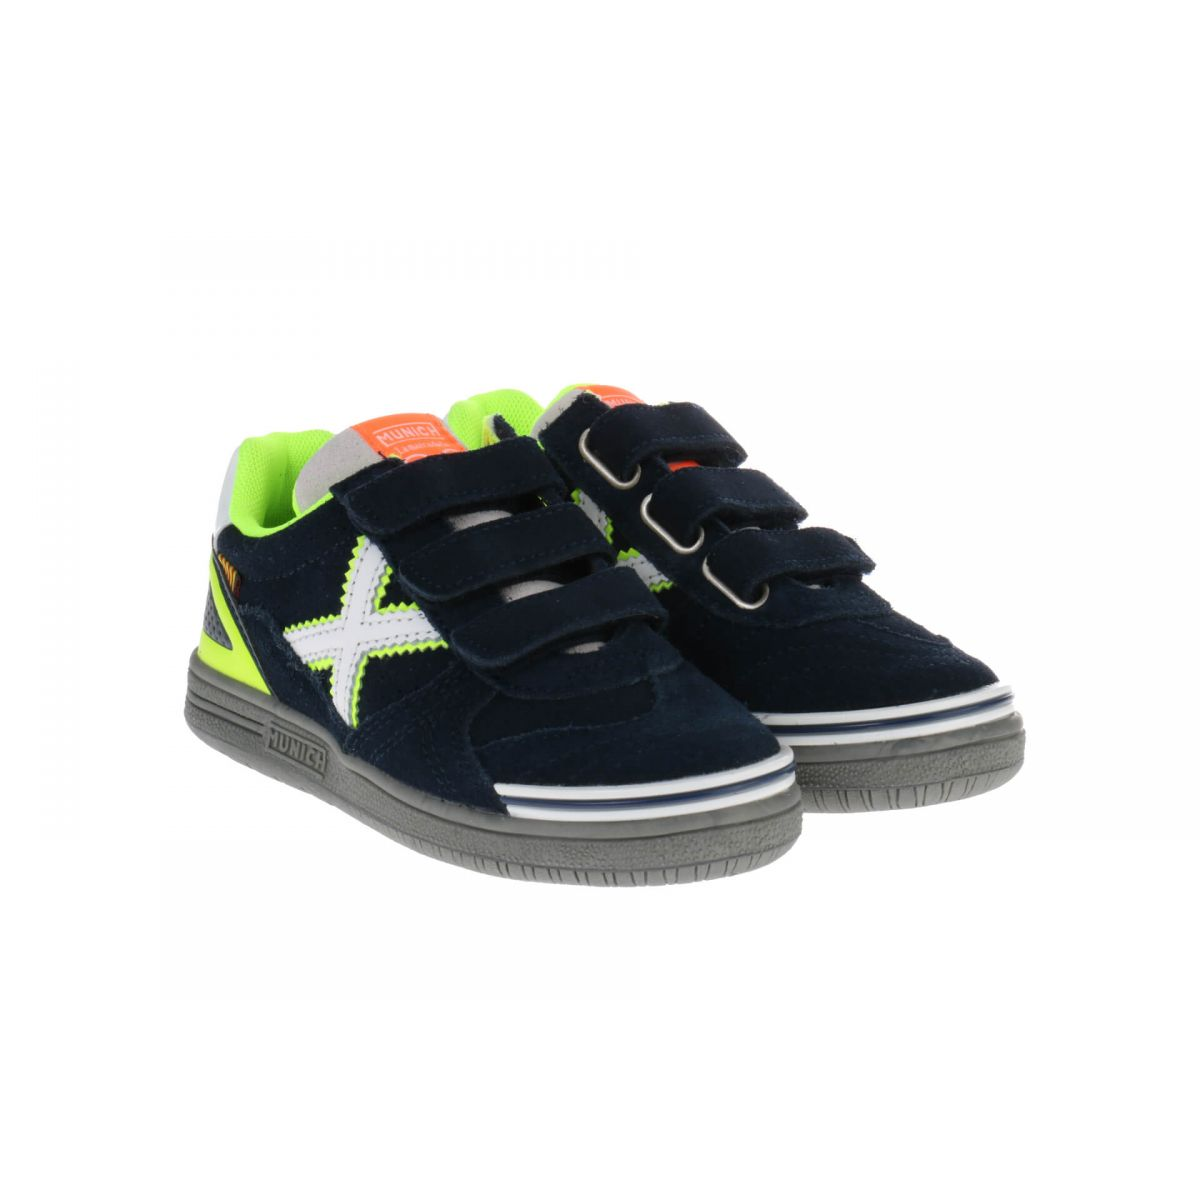 Munich 1514 054 Navy Fluor Yellow